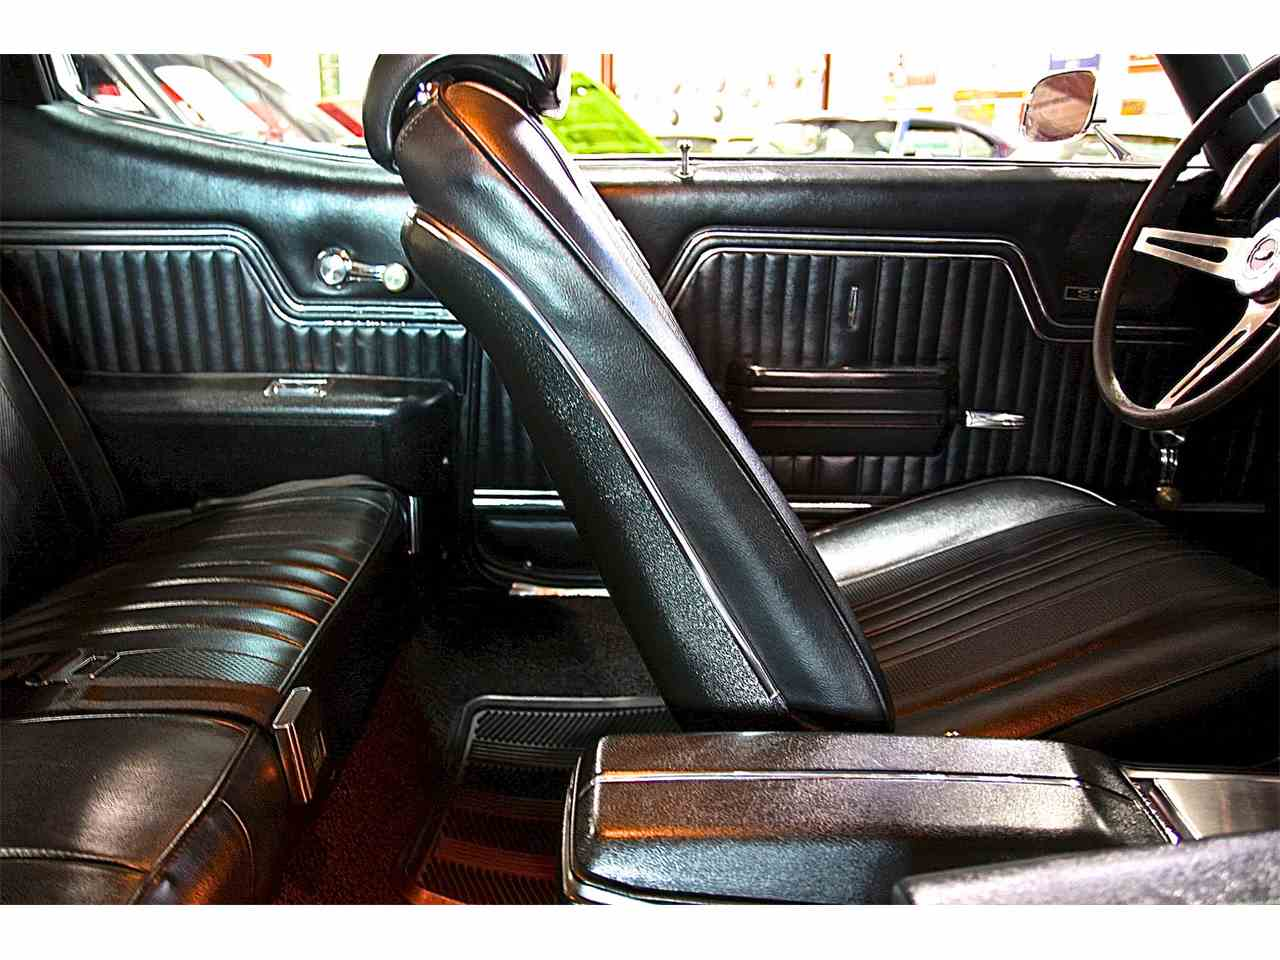 Large Picture of 1970 Chevelle SS located in Fort Lauderdale Florida Offered by a Private Seller - L41W